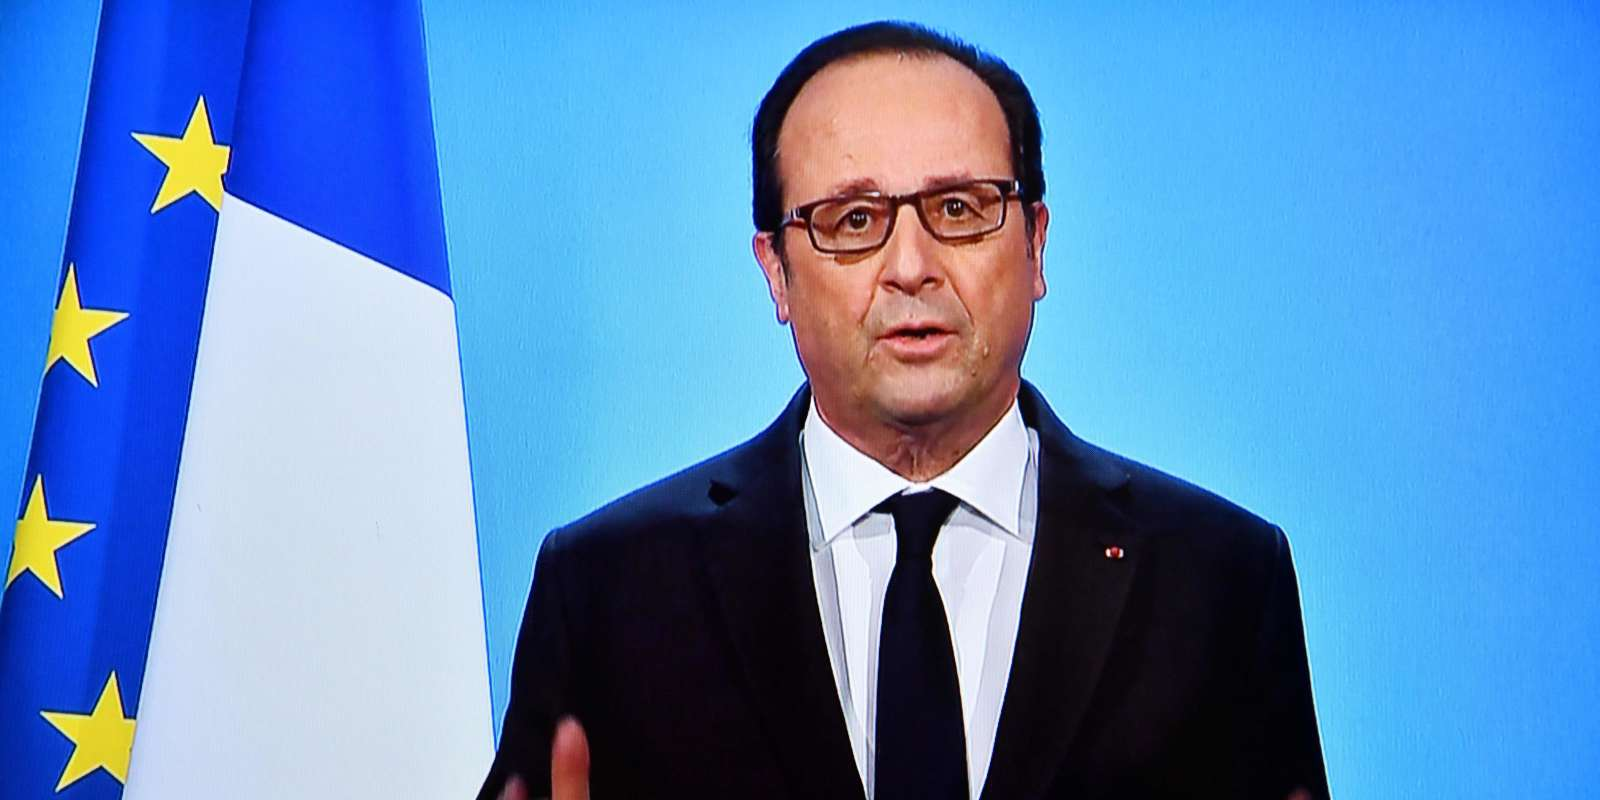 A photo taken on December 1, 2016 in Paris, shows a TV screen displaying French President Francois Hollande delivering an official statement at the Elysee Palace. France's divided ruling Socialists began accepting candidates on December 1 for a party primary race ahead of next year's presidential election, with incumbent Francois Hollande yet to declare whether he will stand. Hollande, who has some of the lowest approval ratings for a French president since World War II, is keeping his party in suspense ahead of a planned primary contest to choose its leader in January. / AFP / OLIVIER MORIN